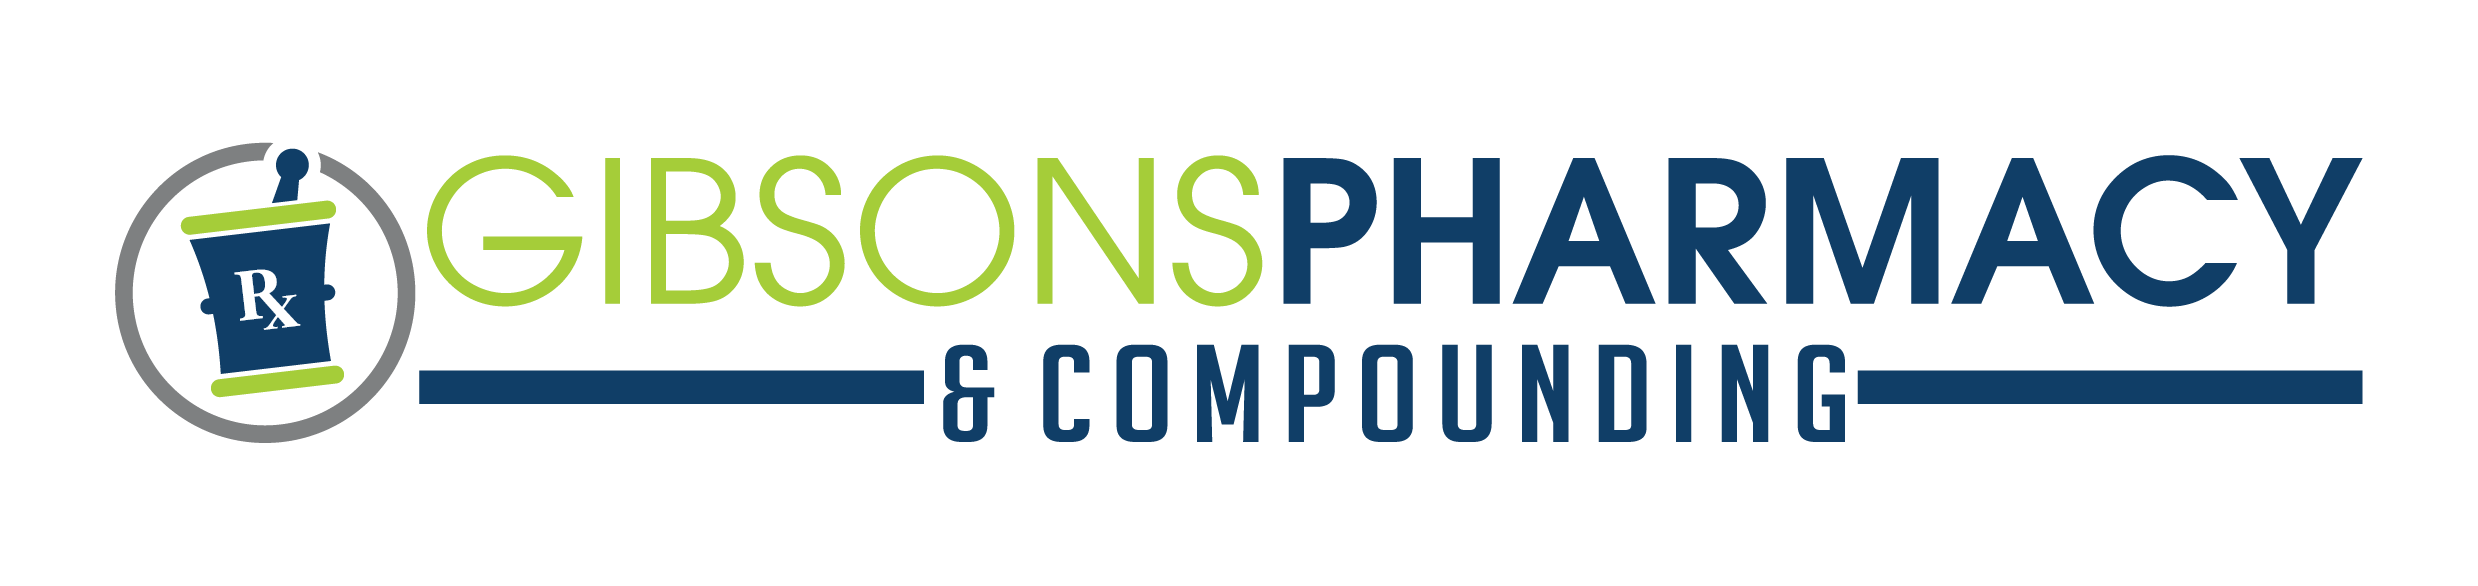 New - RI - Gibson's Pharmacy & Compounding